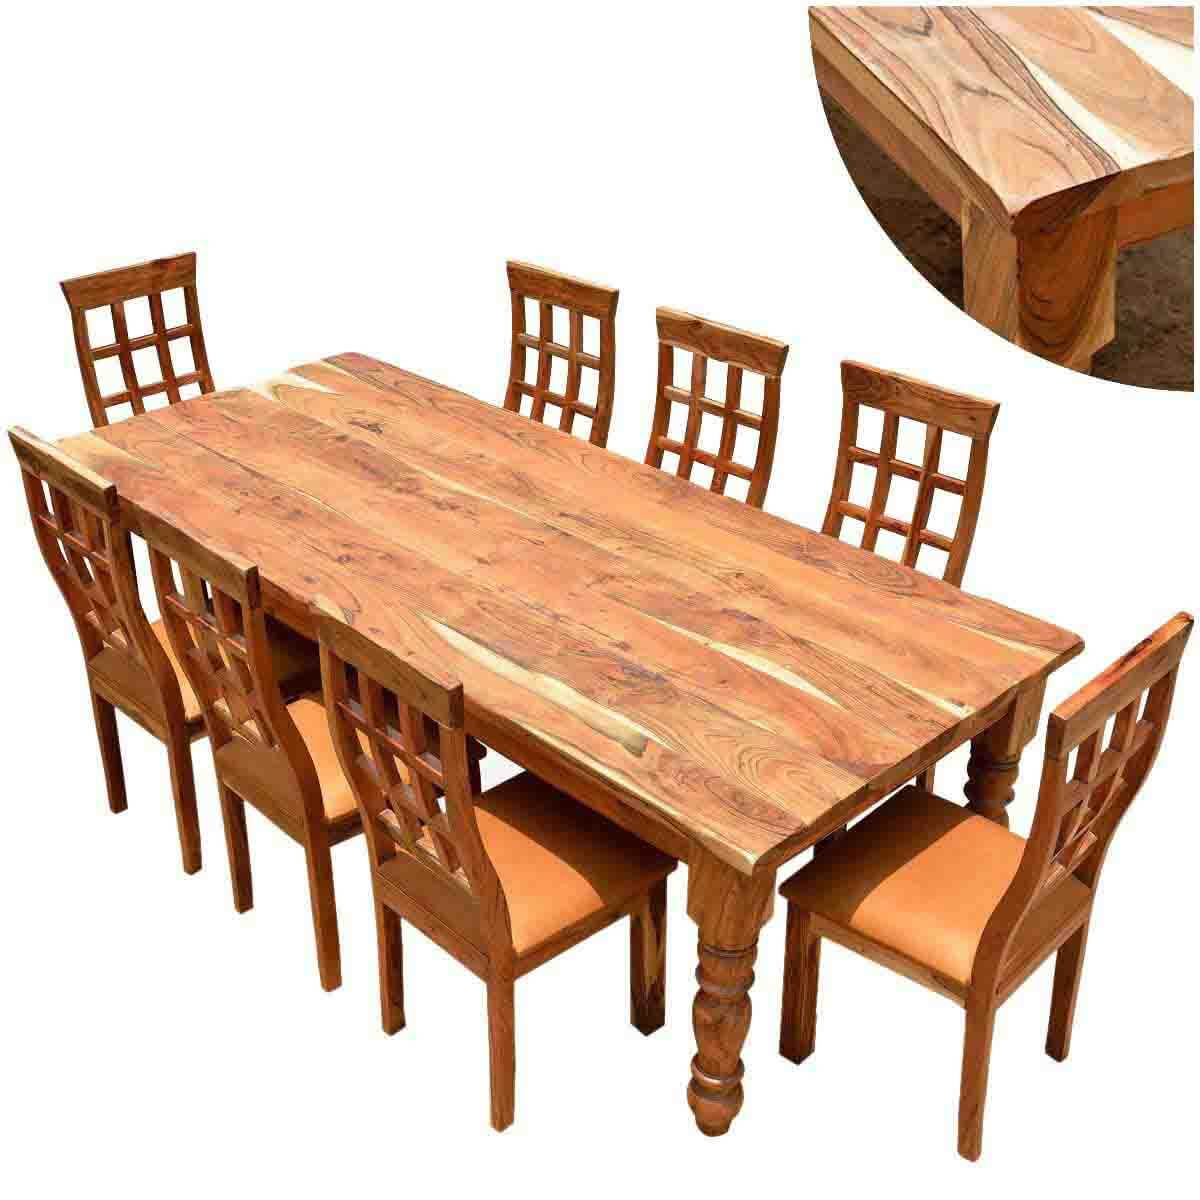 Rustic Wood Chairs Rustic Dining Table And Chair Sets Sierra Living Concepts